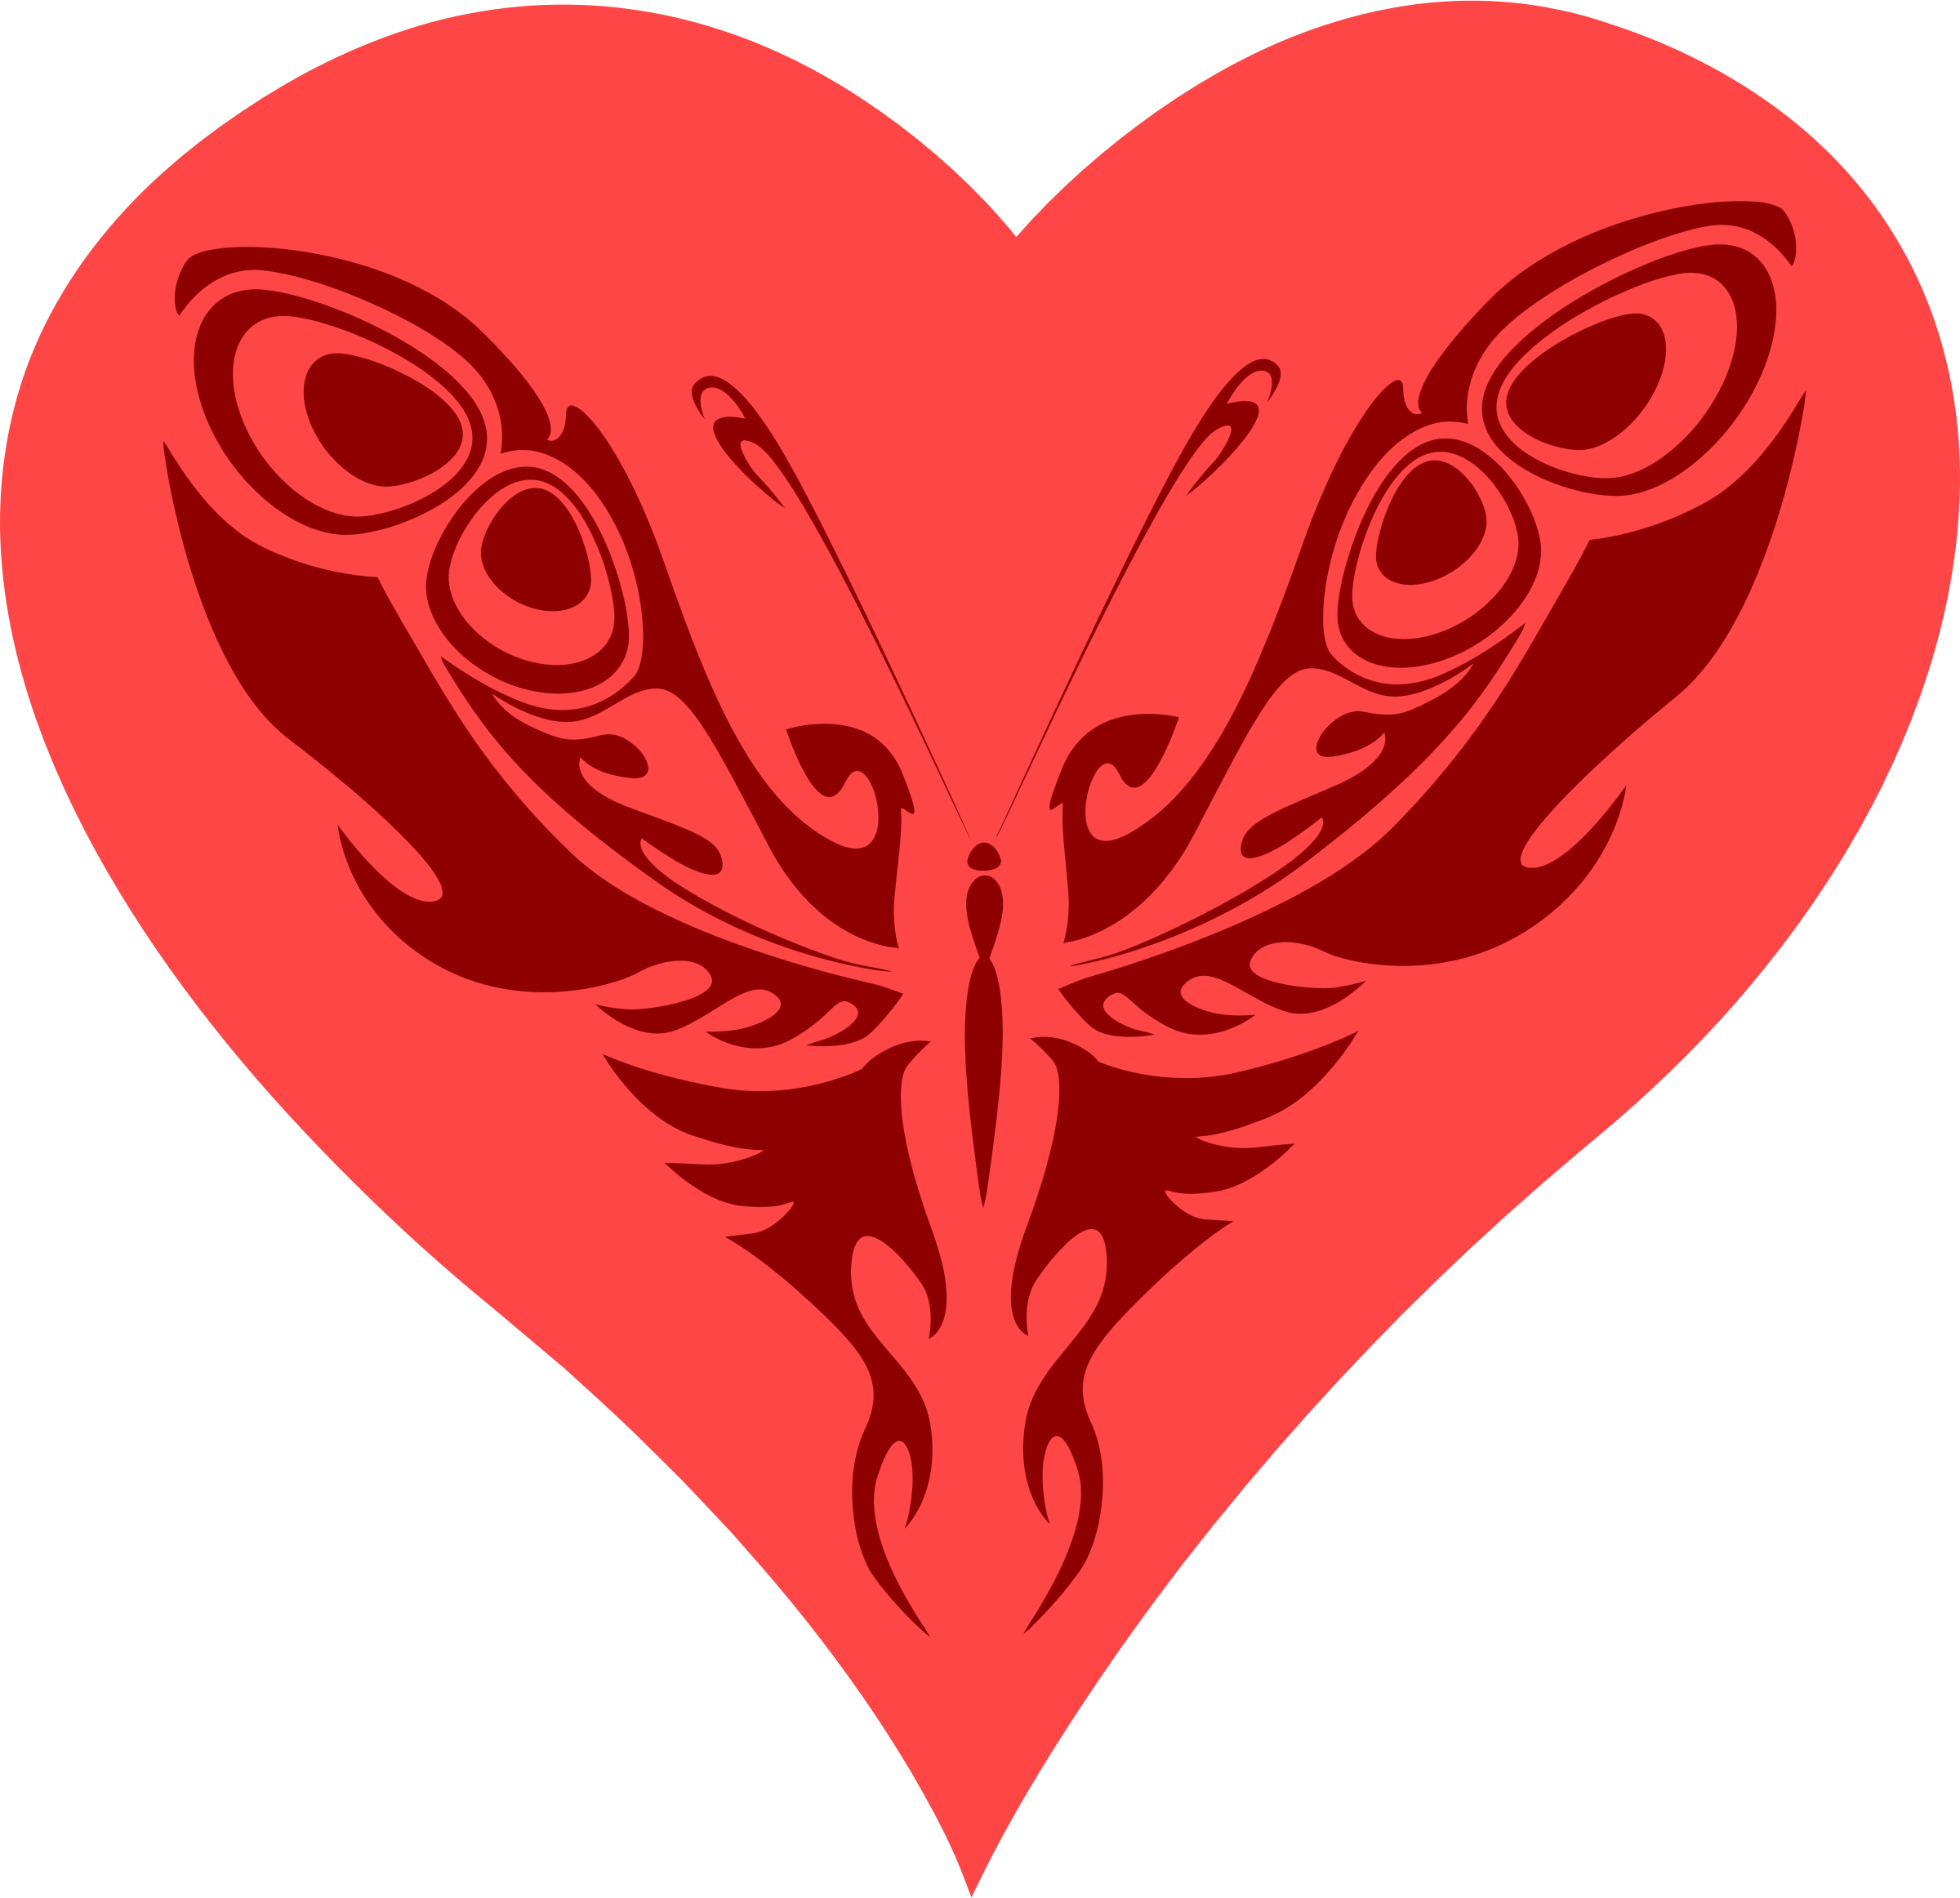 Heart butterfly clipart image freeuse stock Clipart - Butterfly heart image freeuse stock